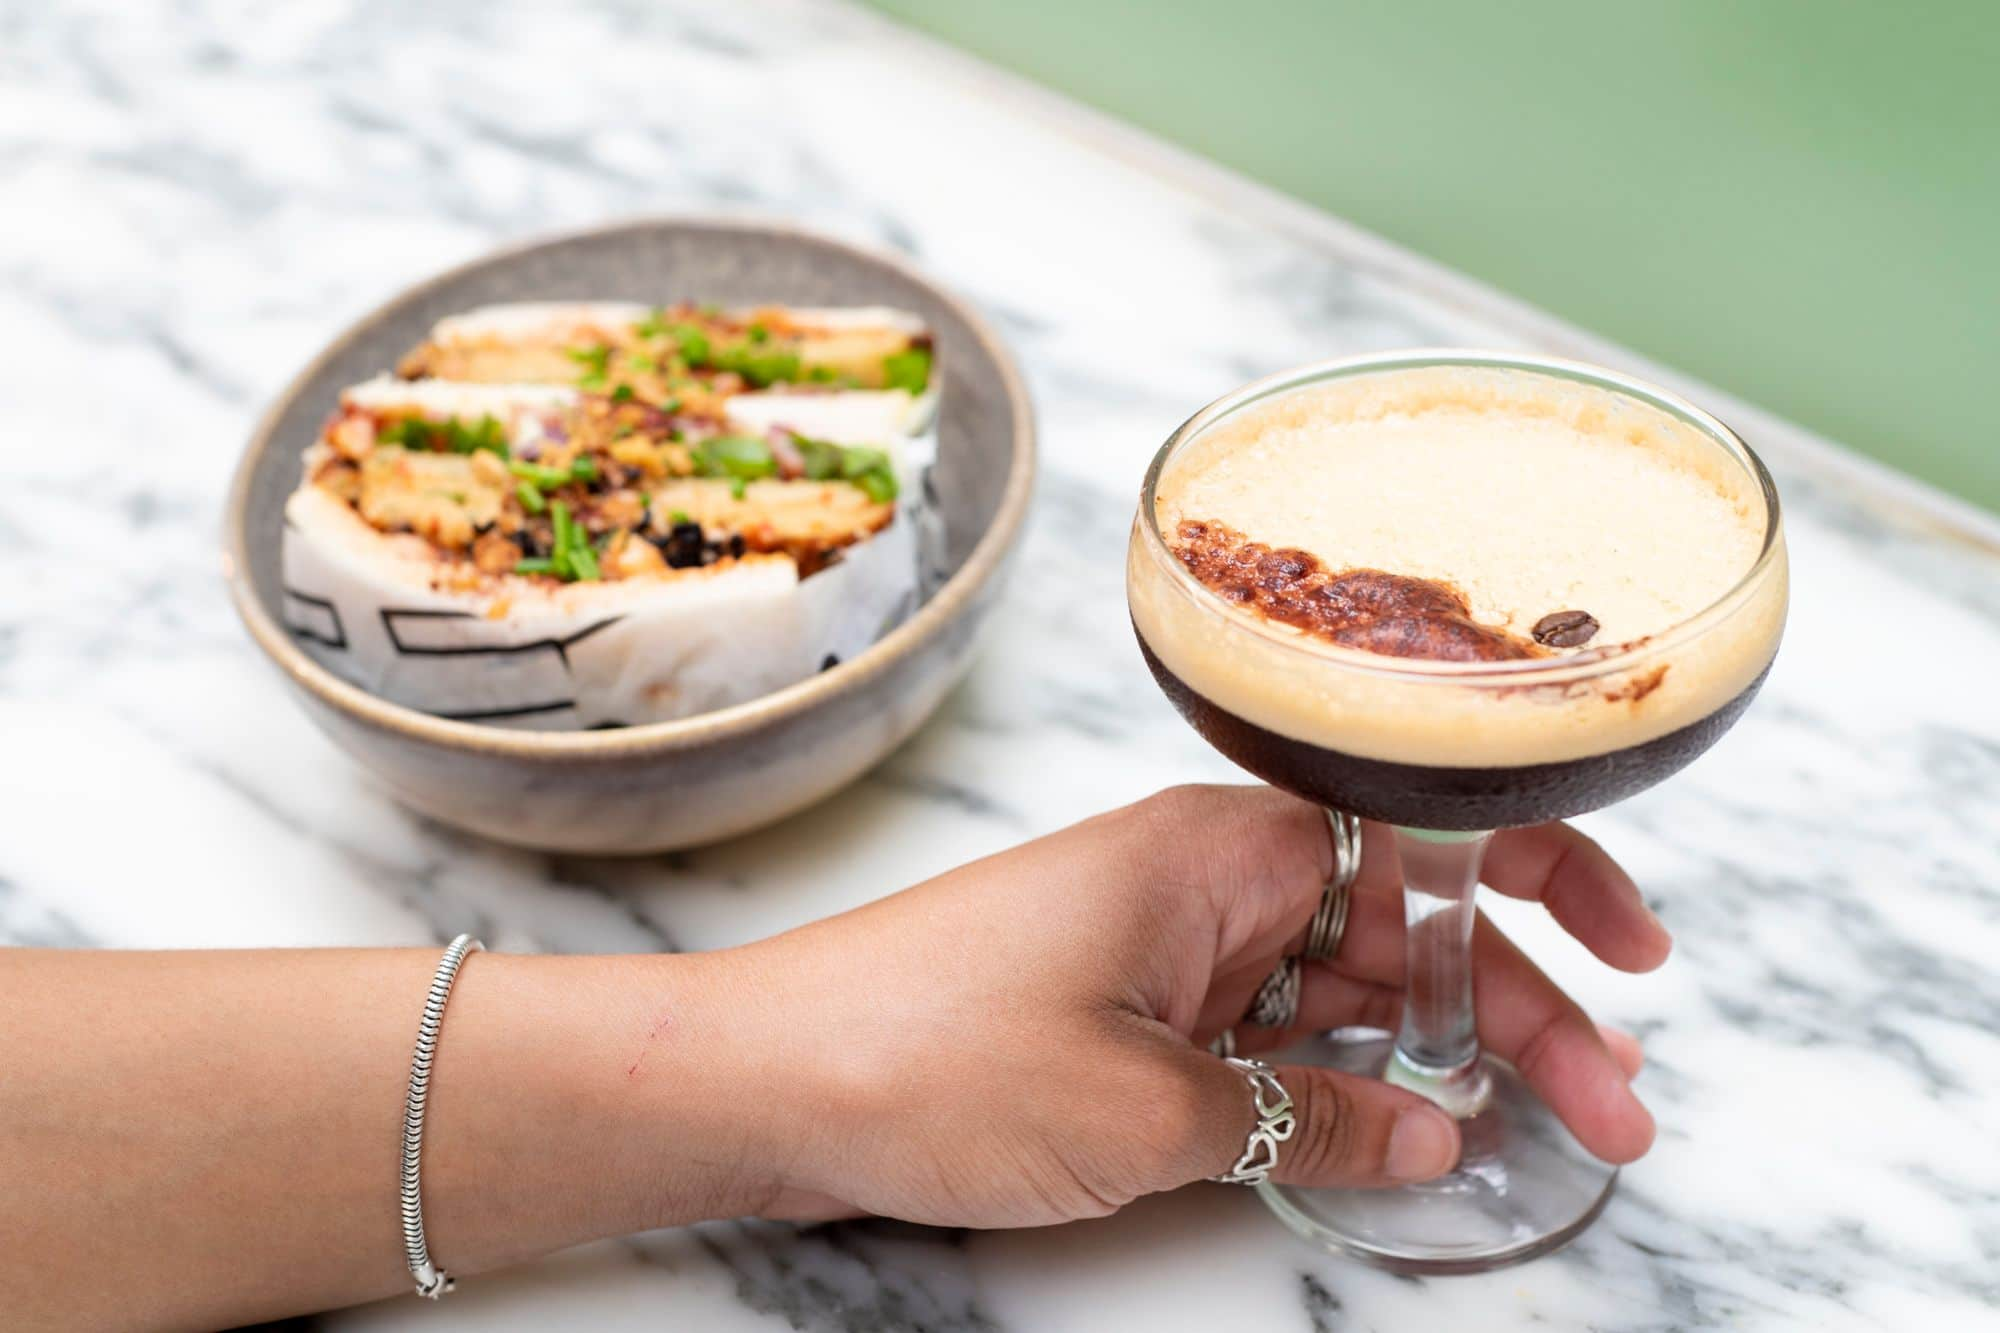 hand with rings on holding fancy glass of espresso martini